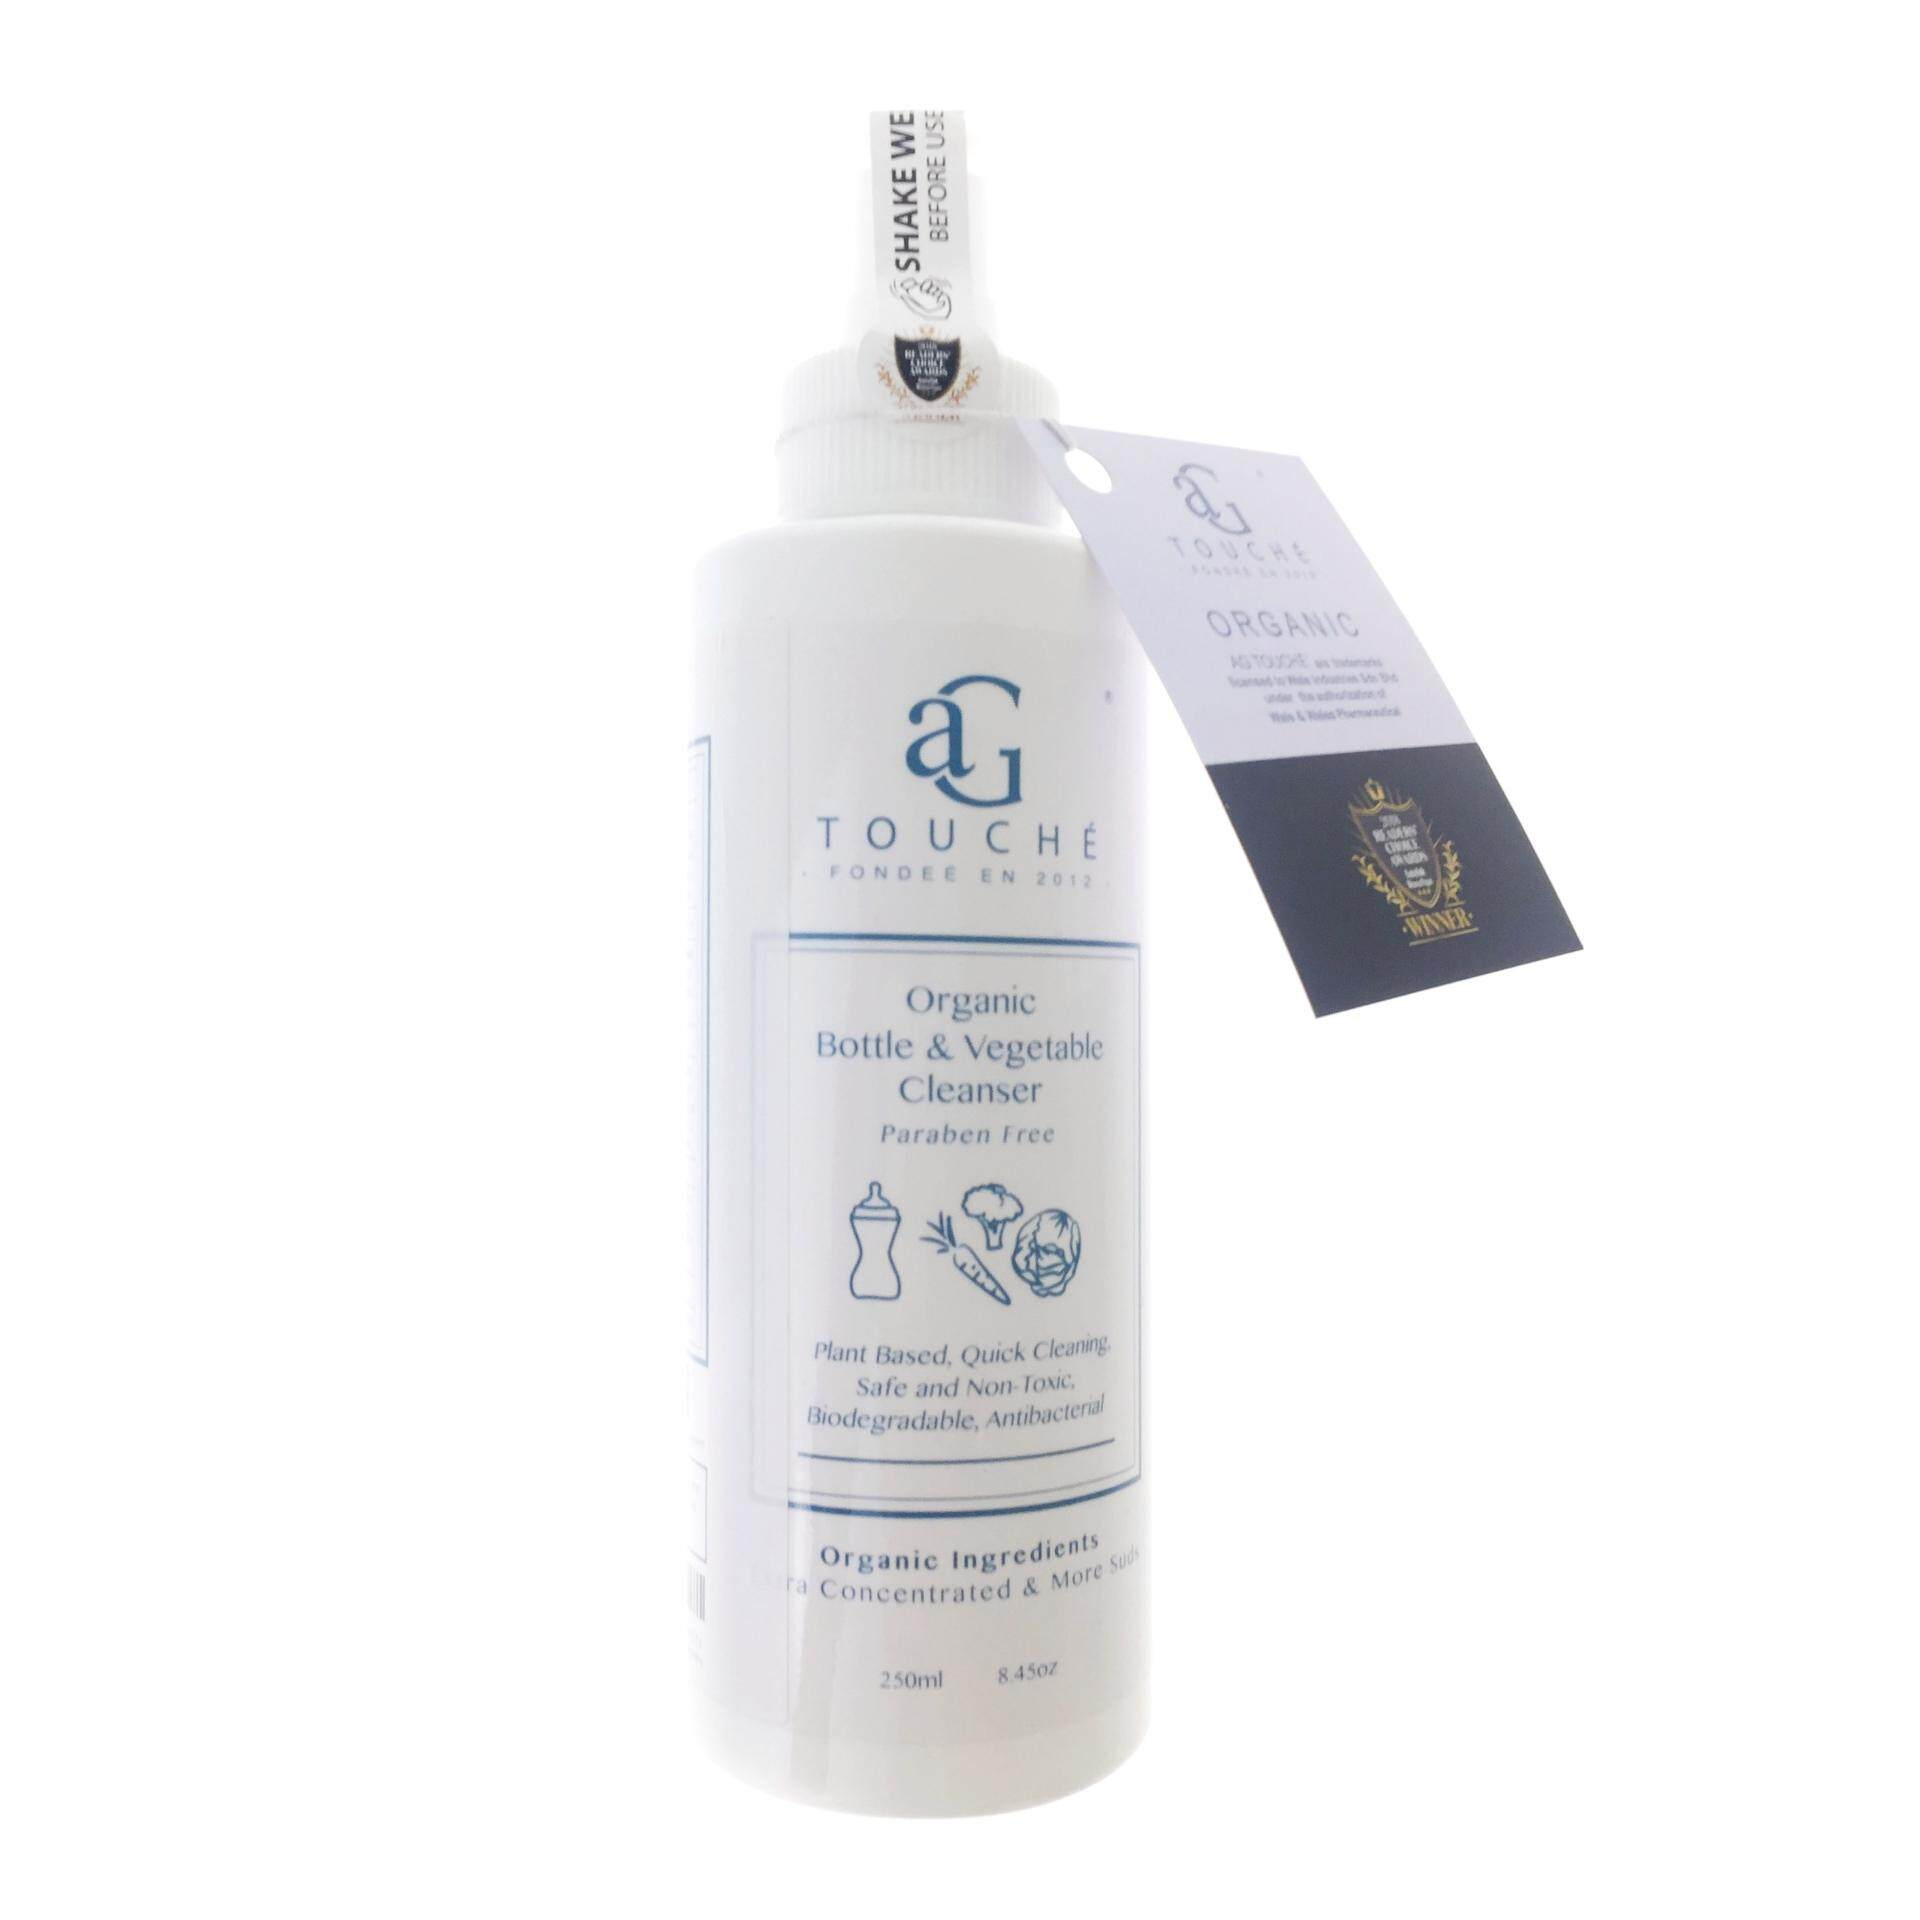 AG Touché Organic Bottle & Vegetable Cleanser 250ml & 1L